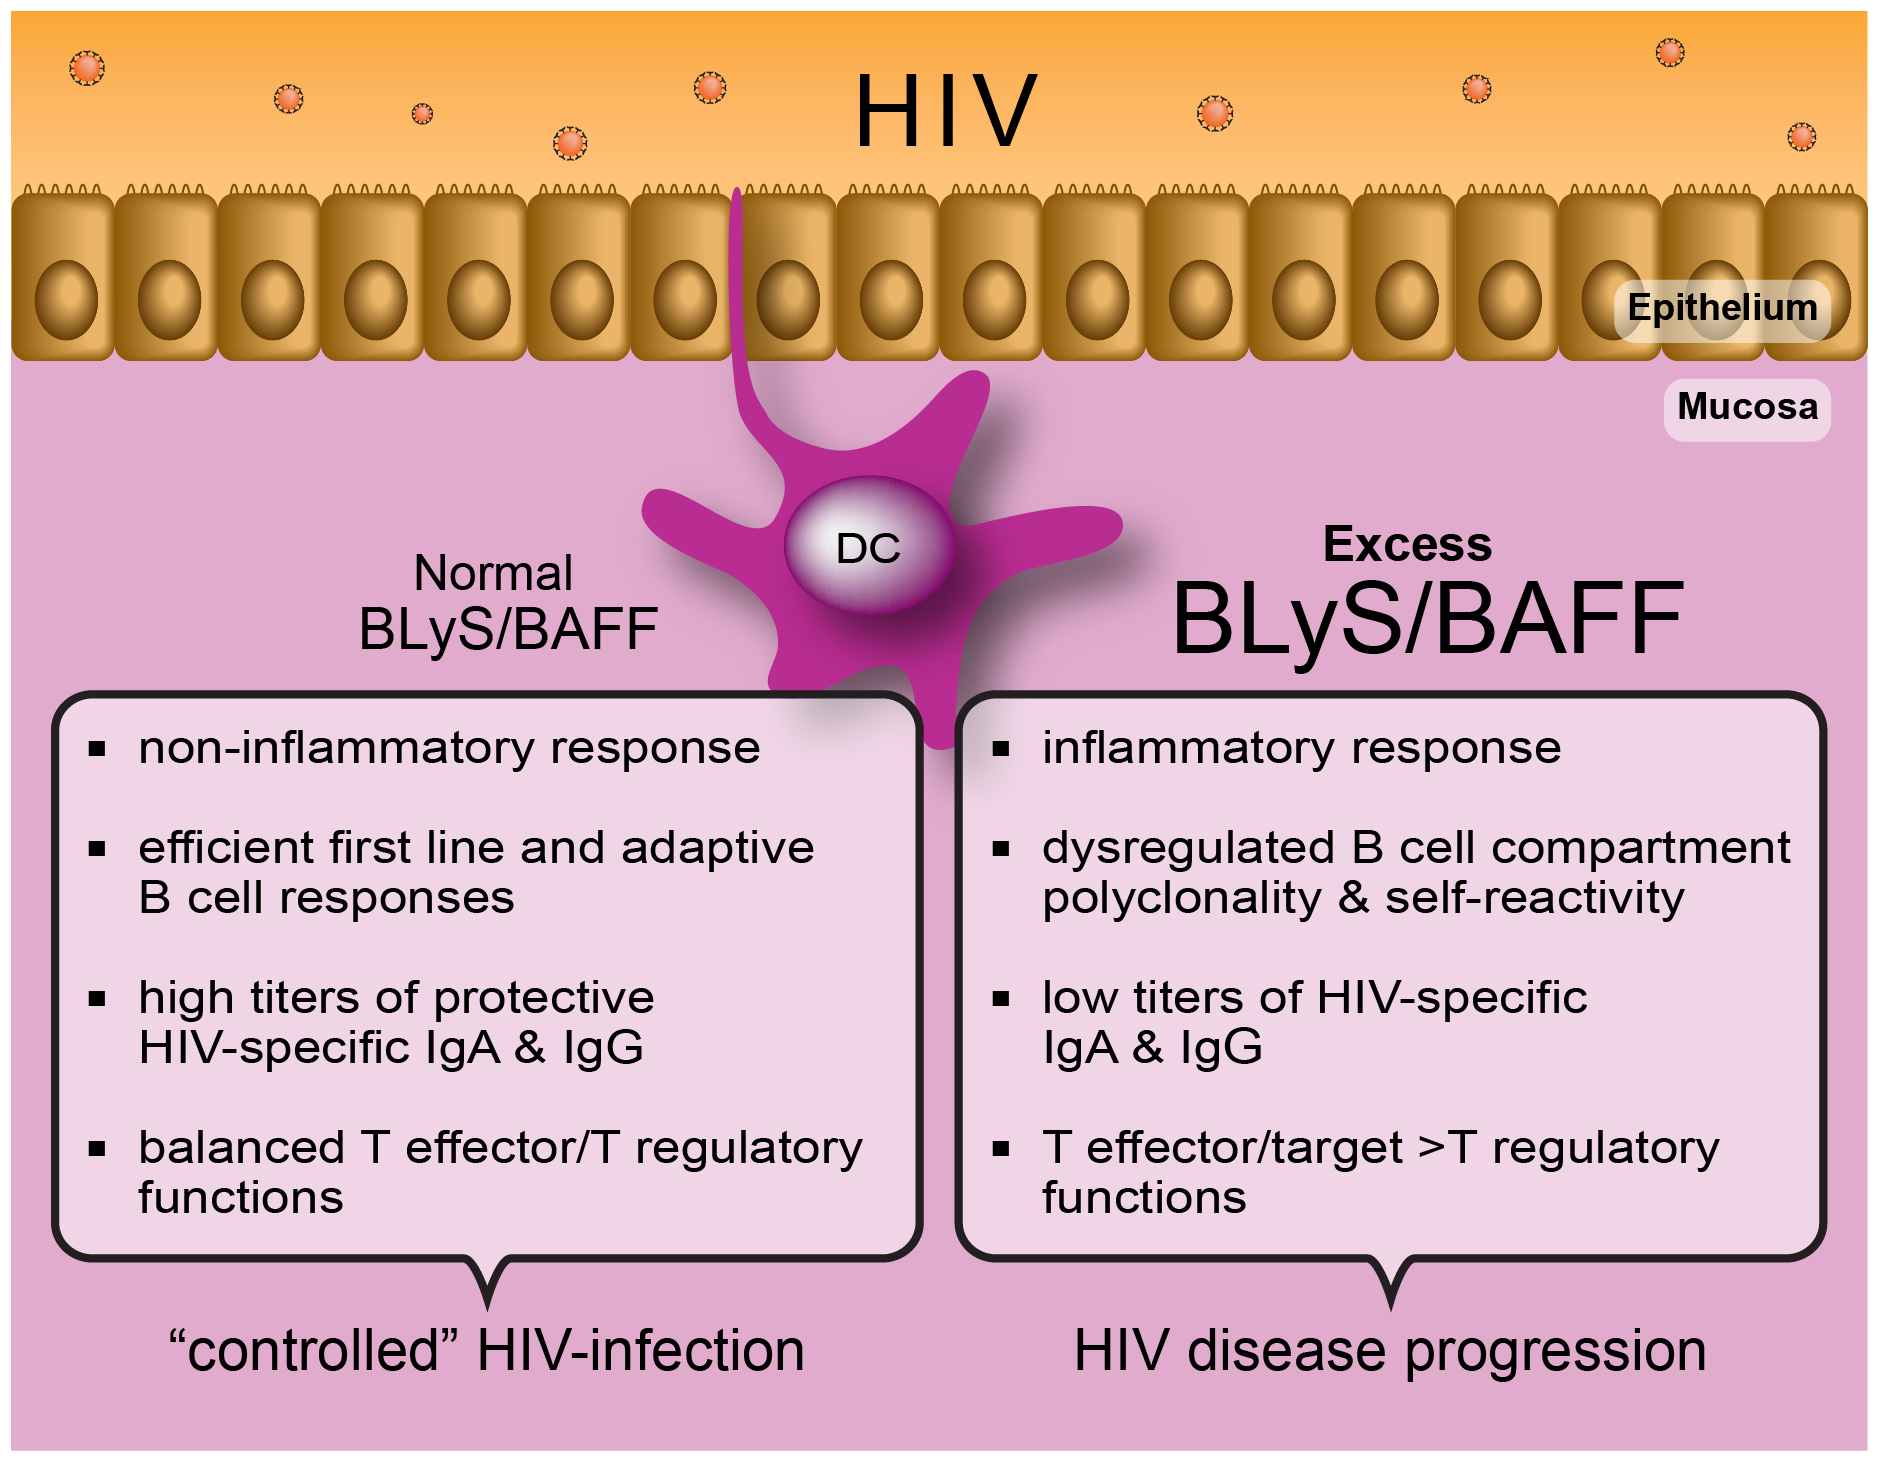 """The capacity to control immune homeostasis at mucosal sites, where the main battle against HIV takes place, is reflected by a normal """"non-inflammatory"""" BLyS/BAFF expression status."""